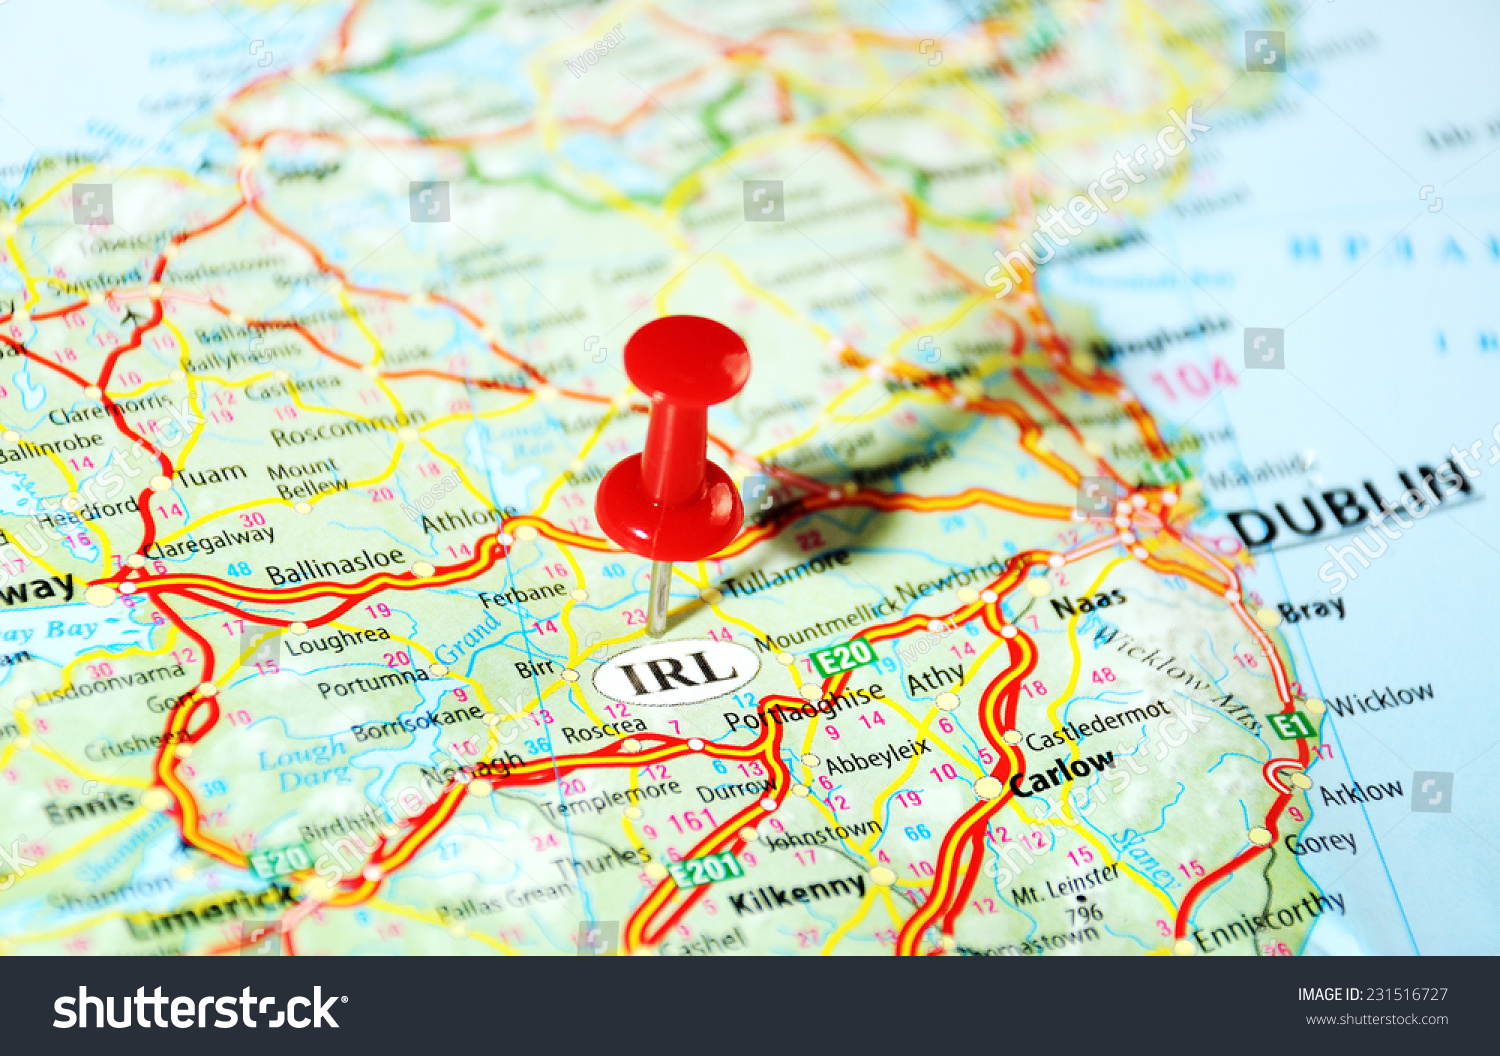 Ireland United Kingdom Map And Pin Travel Concept Photo – Travel Map of Ireland